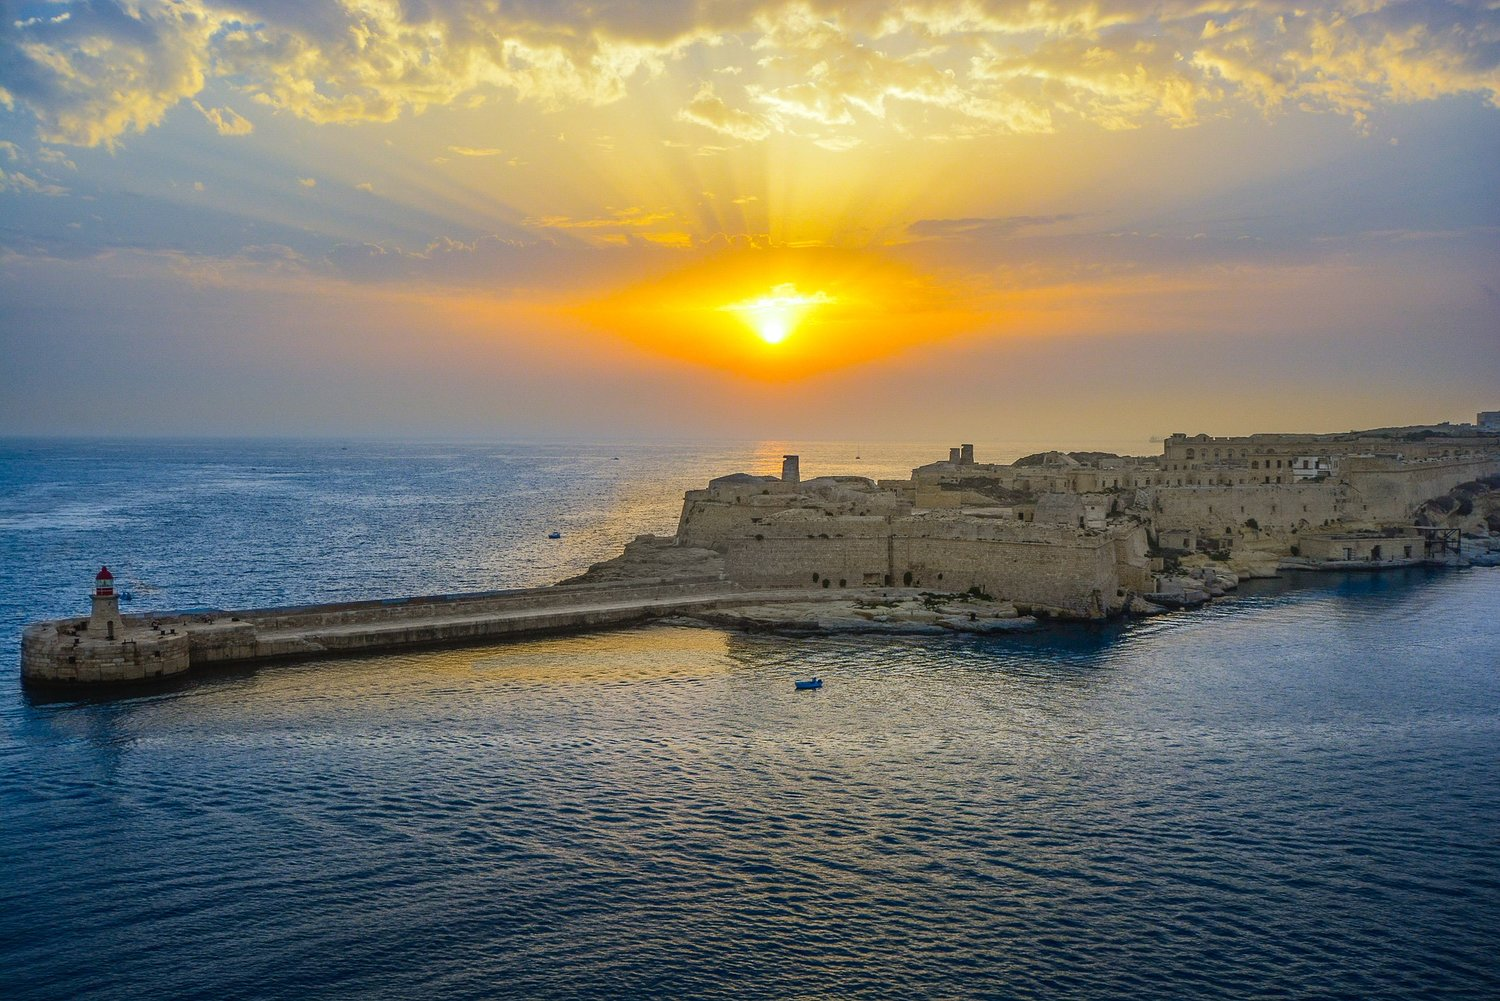 DESTINATIONS THAT PROVE THE MEDITERRANEAN IS THE MOST BEAUTIFUL - 12 destinations to see the most beautiful sunsets ever